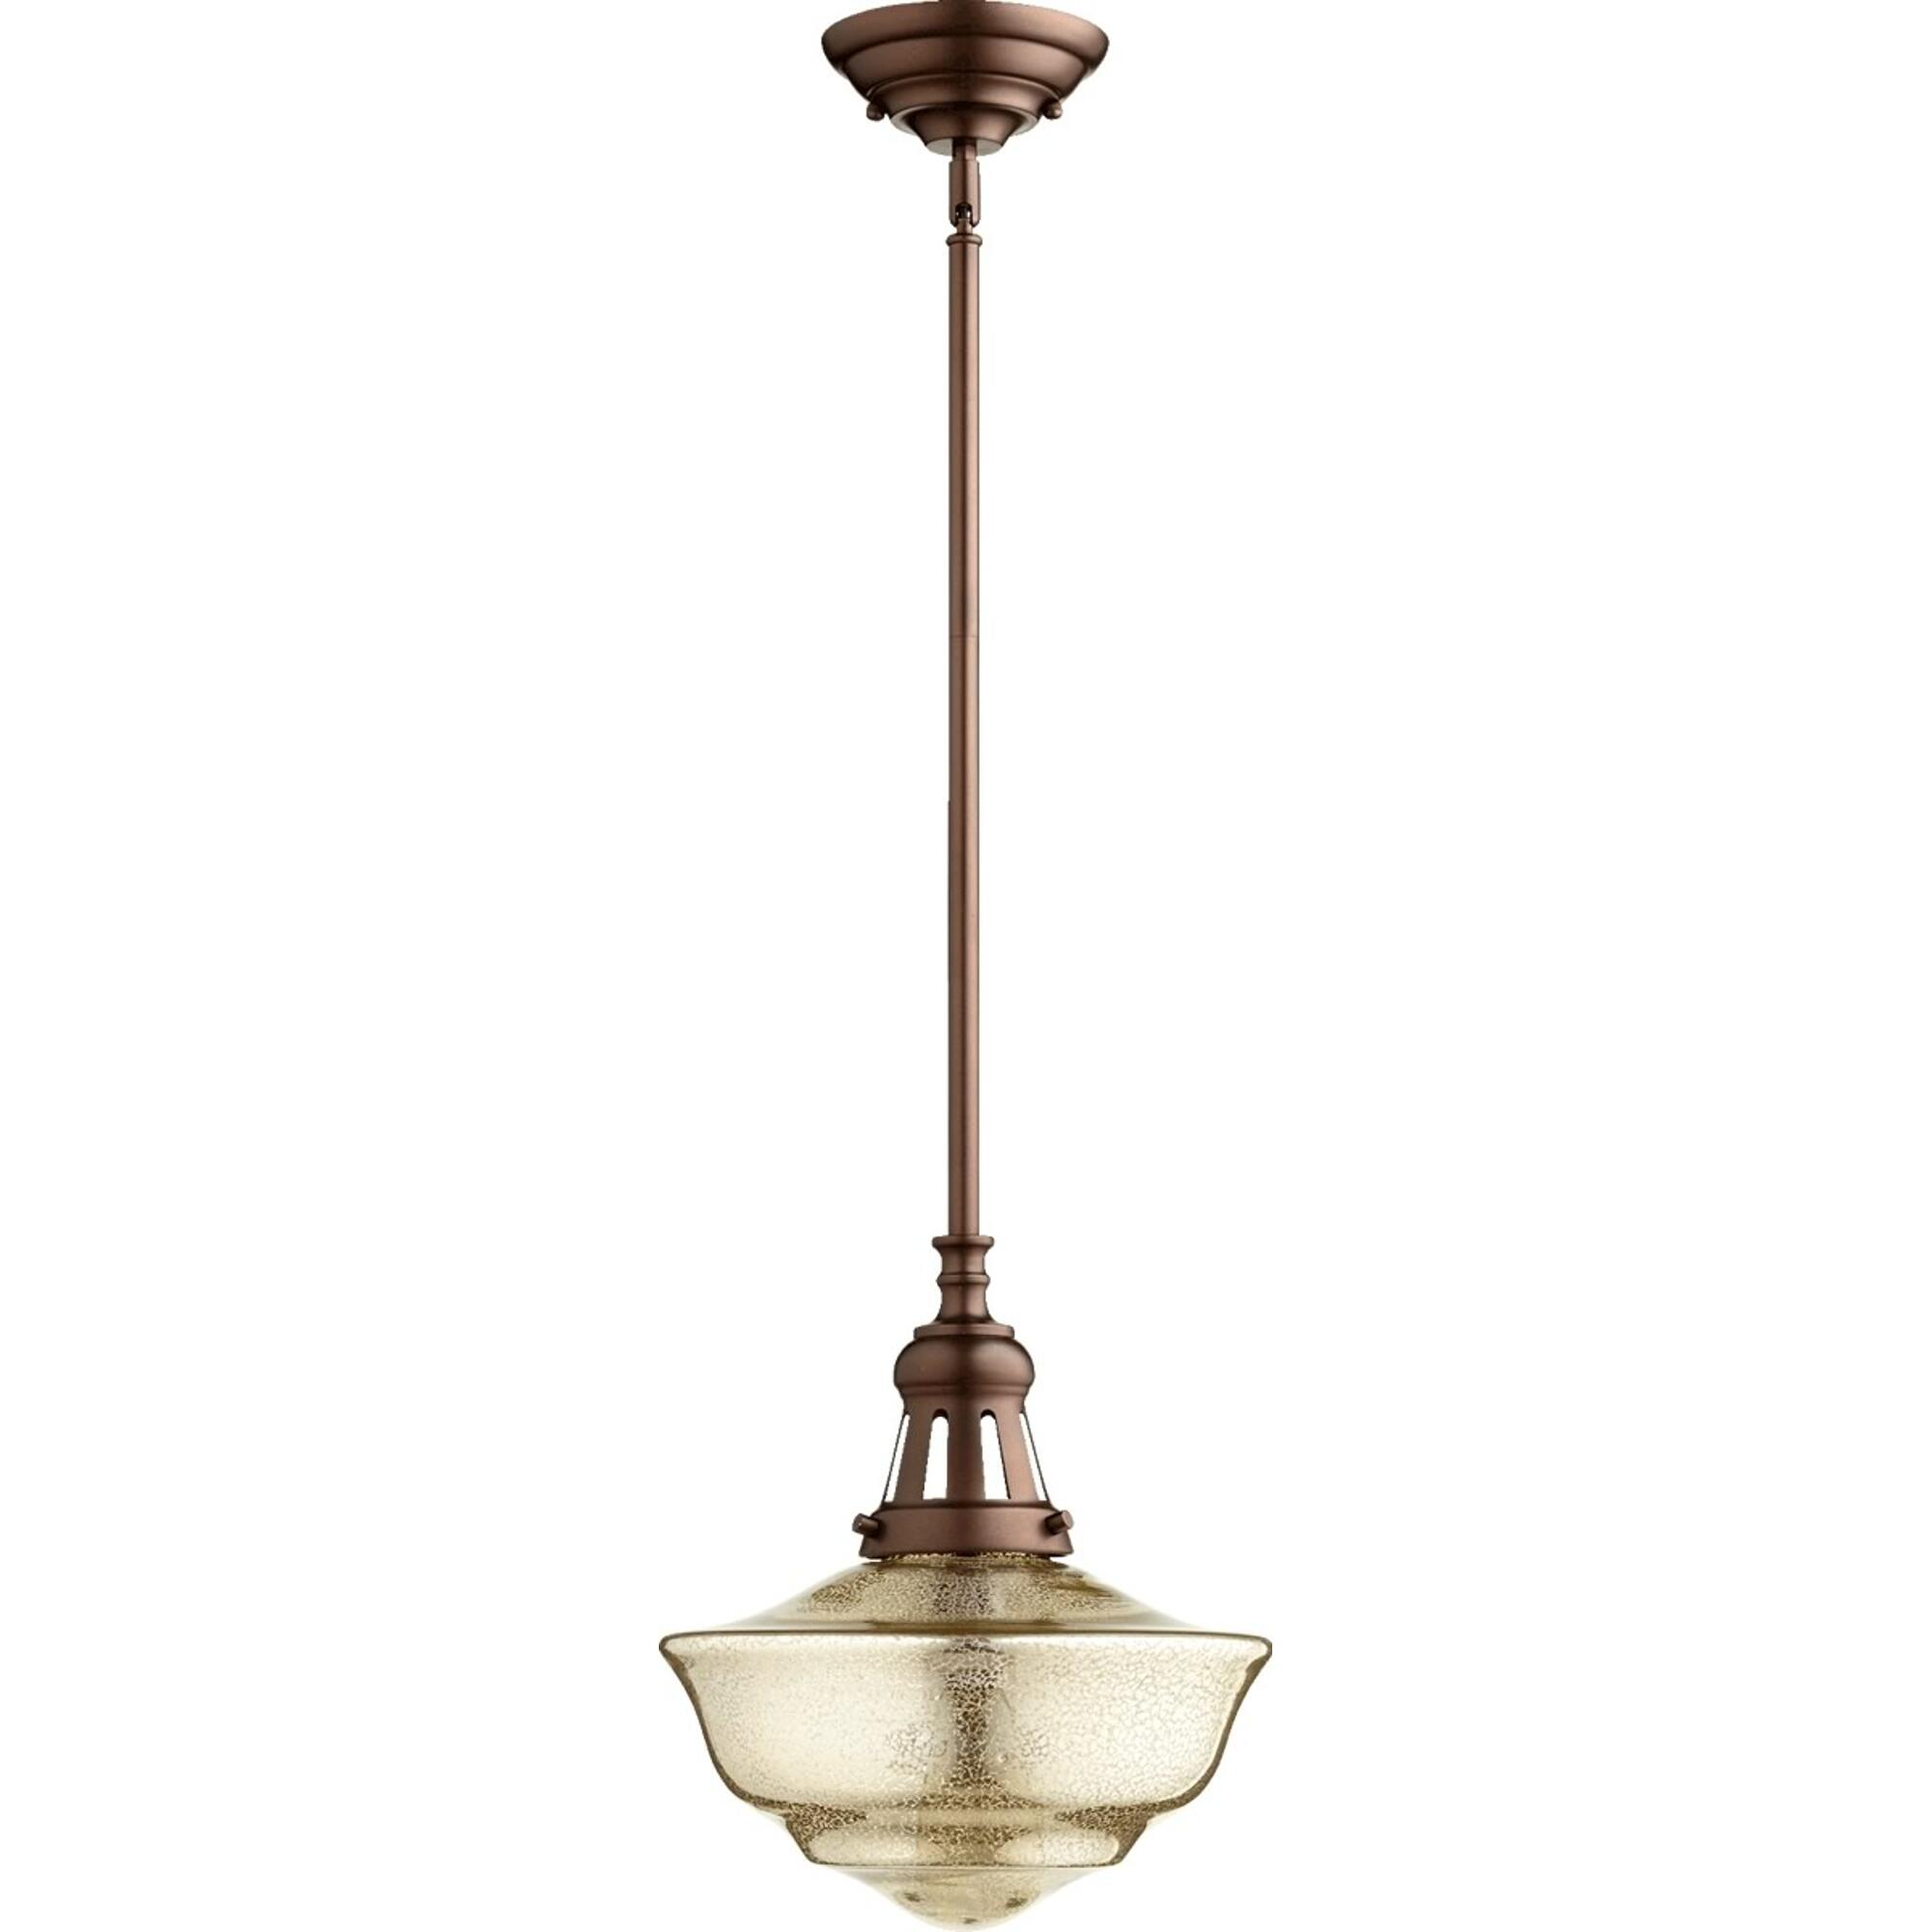 1-Light Pendant Oiled Bronze/Mercury by Quorum. Vintage Design Perfect for restation projects or adding a fresh look to a kitchen island, over a bar, or a bathroom